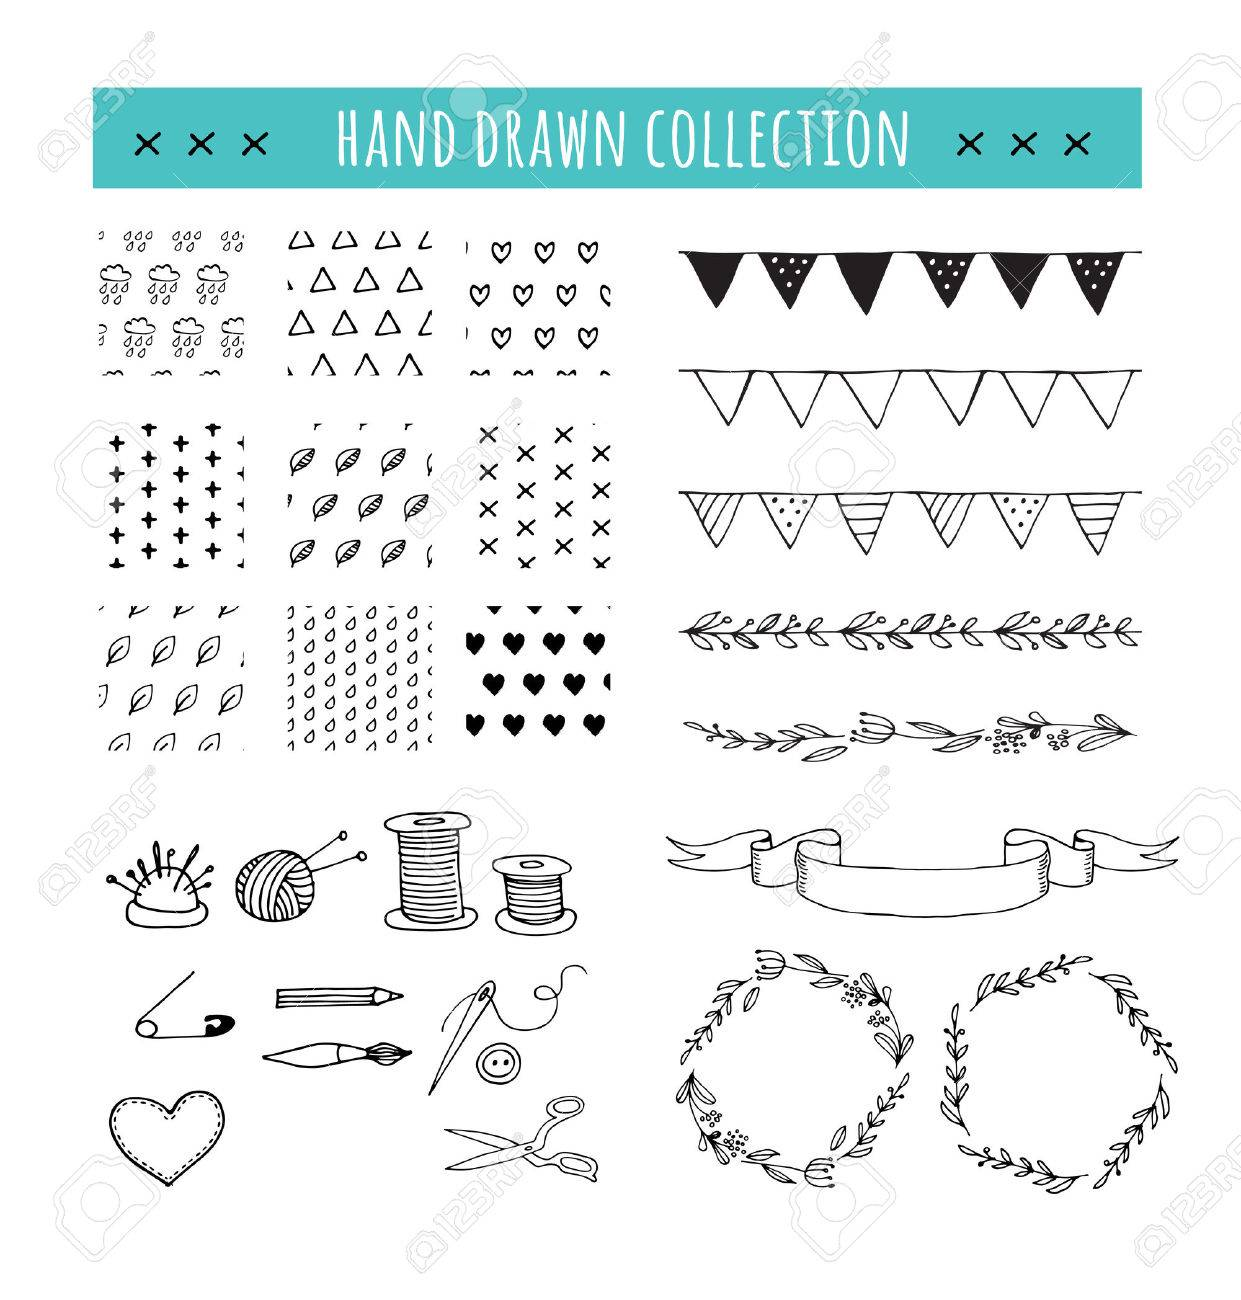 Handmade, crafts workshop icons and patterns. Hand drawn vector illustrations - 55806090